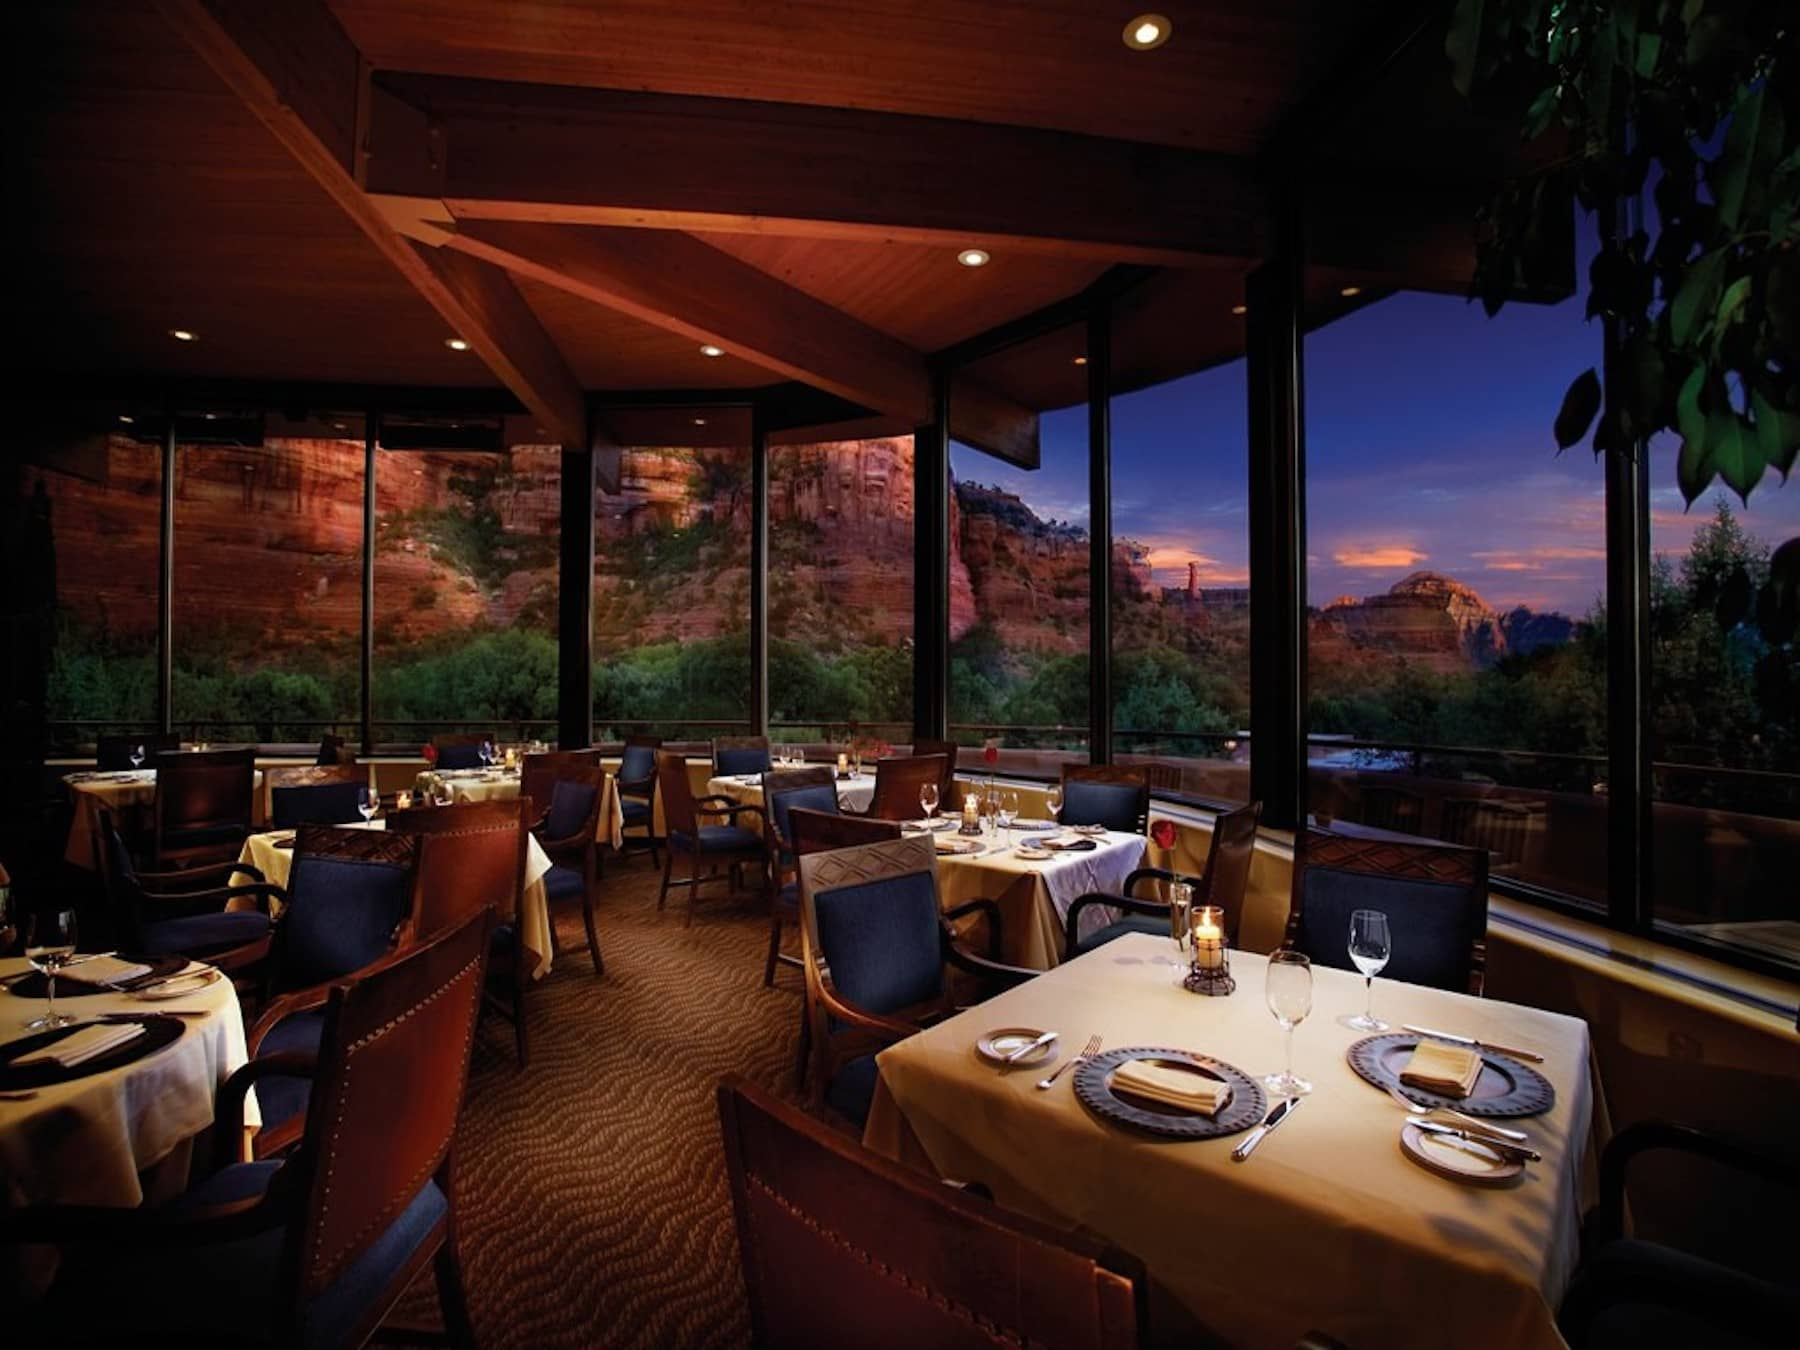 Enchantment Resort – Grand Canyon Stati Uniti - Viaggio di nozze